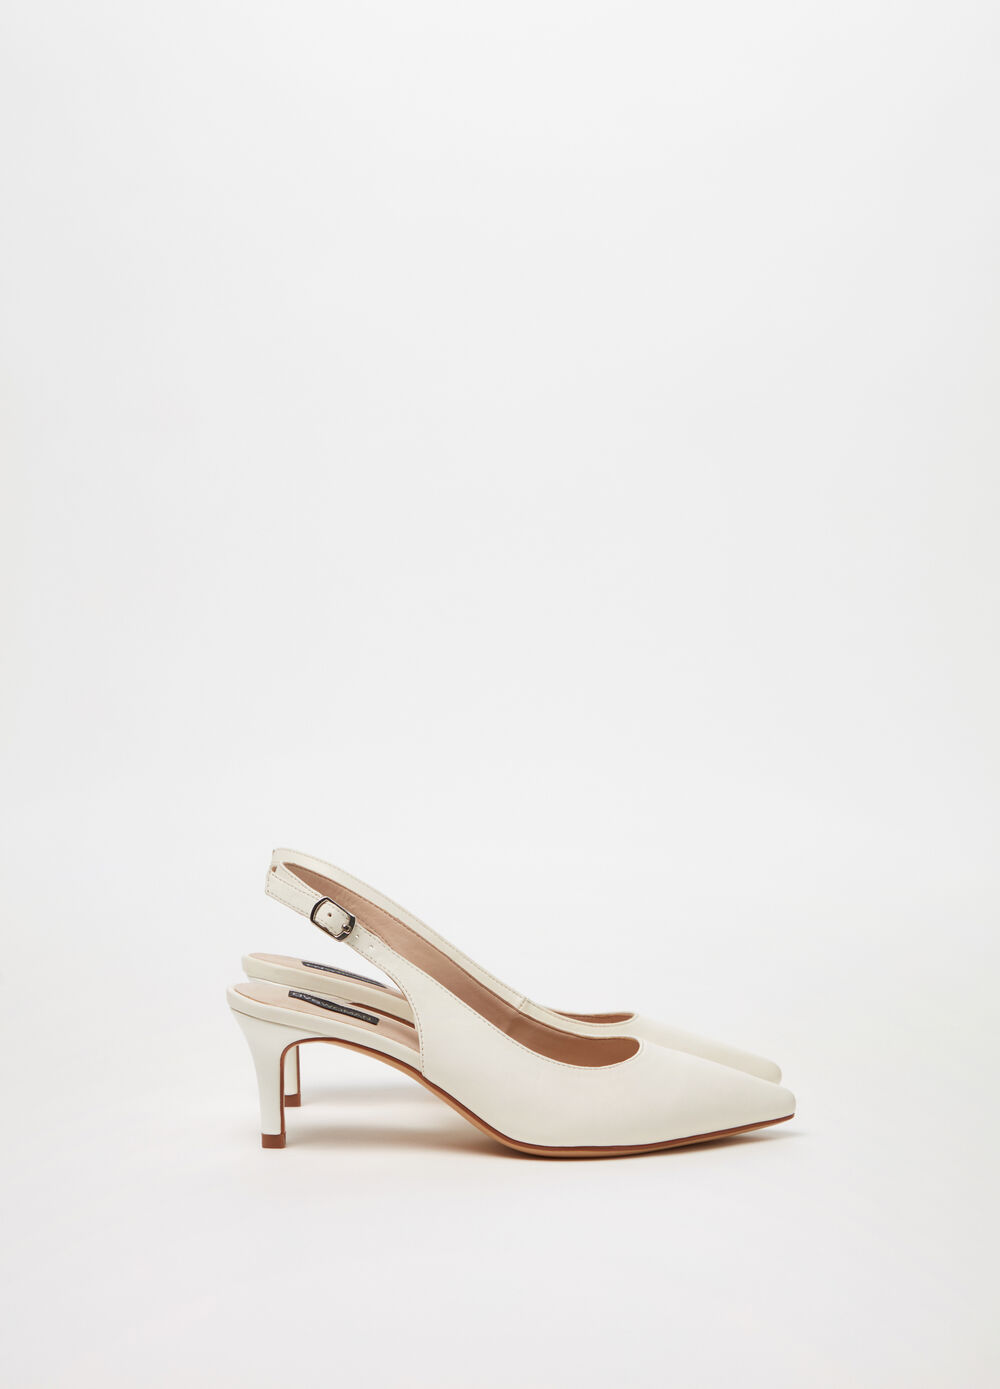 ***Court shoe with thin high-heel and strap